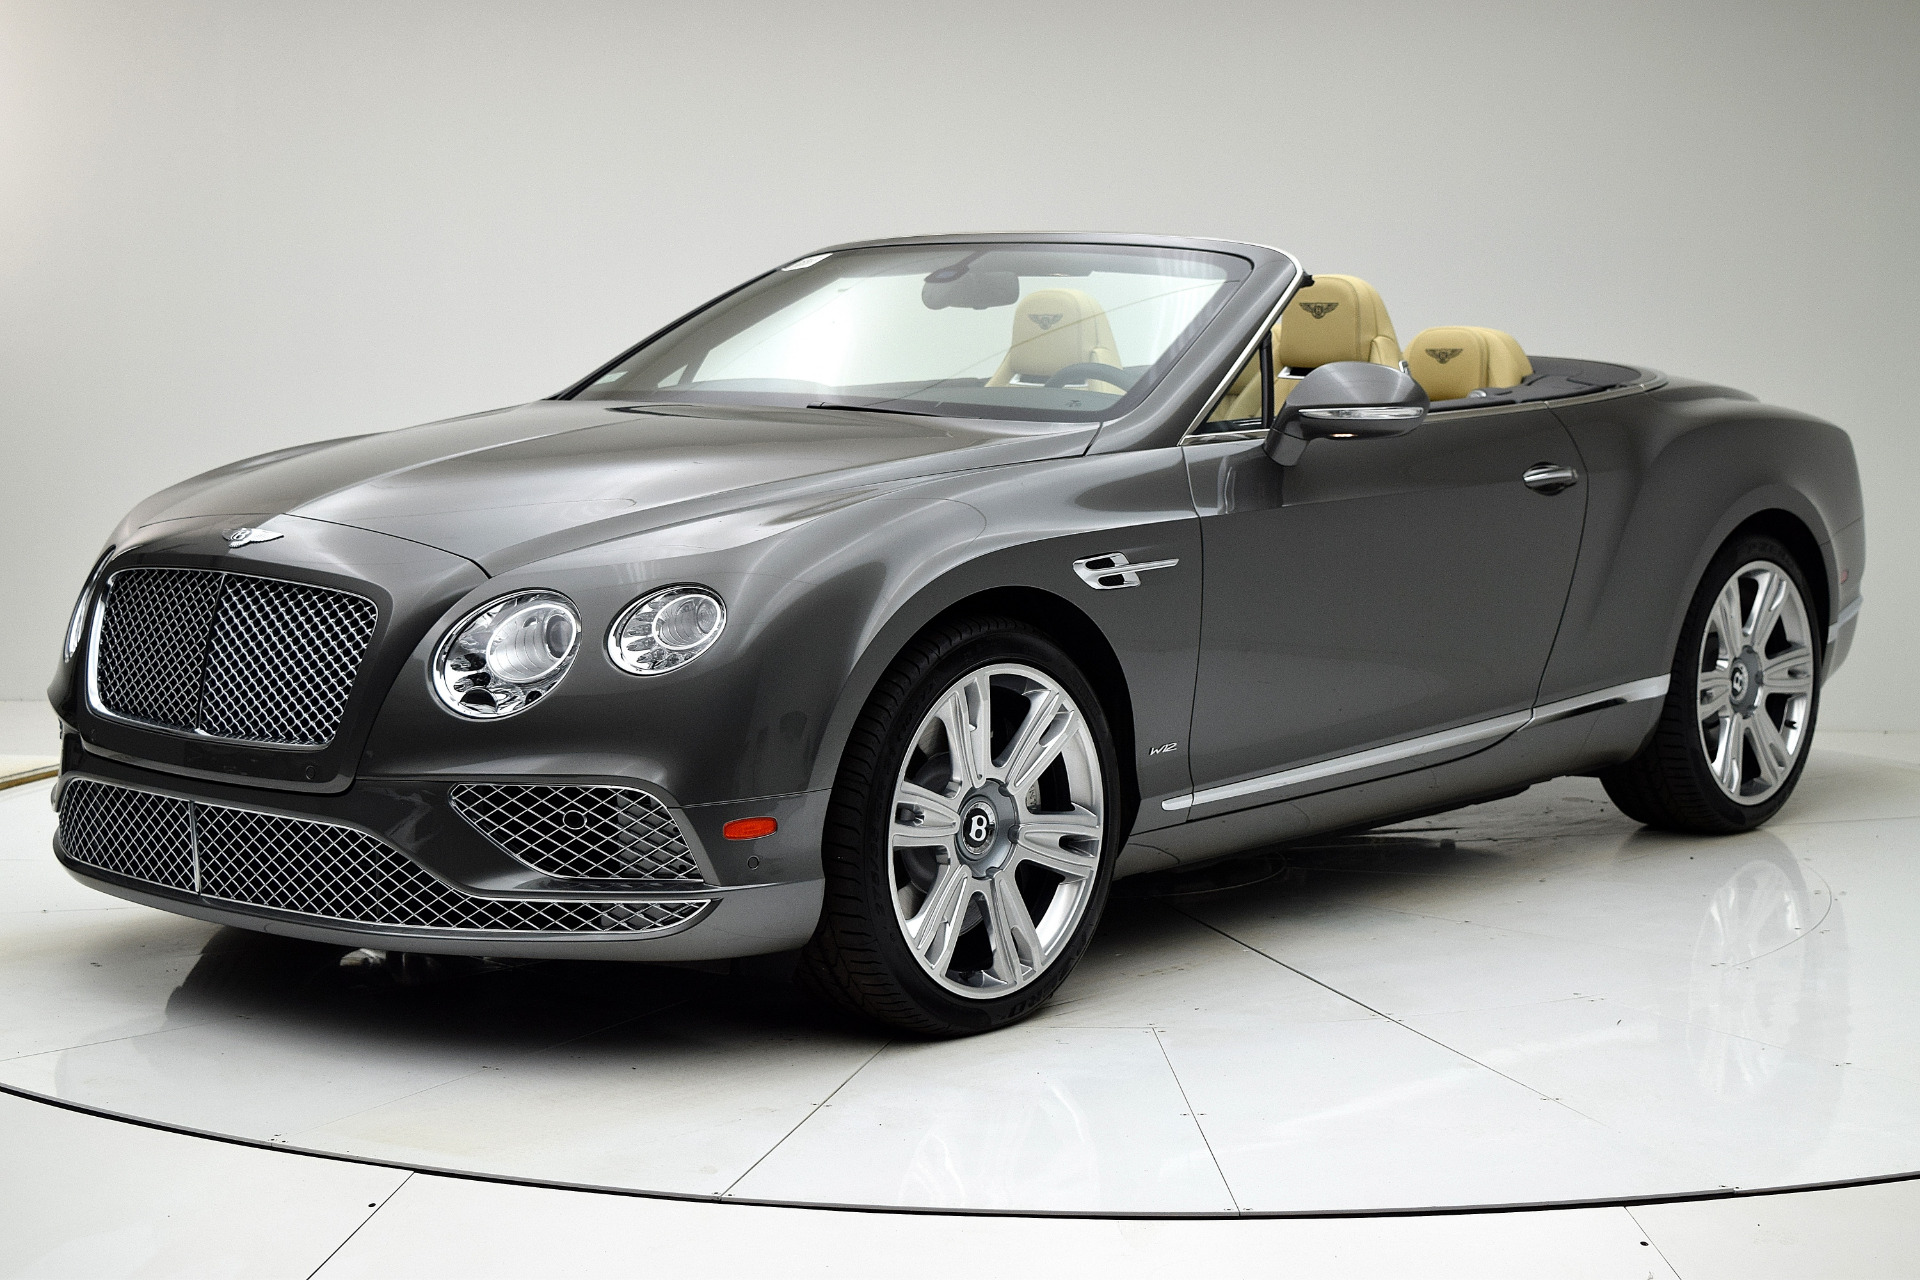 Used 2016 Bentley Continental GT W12 Convertible for sale $139,880 at F.C. Kerbeck Aston Martin in Palmyra NJ 08065 2